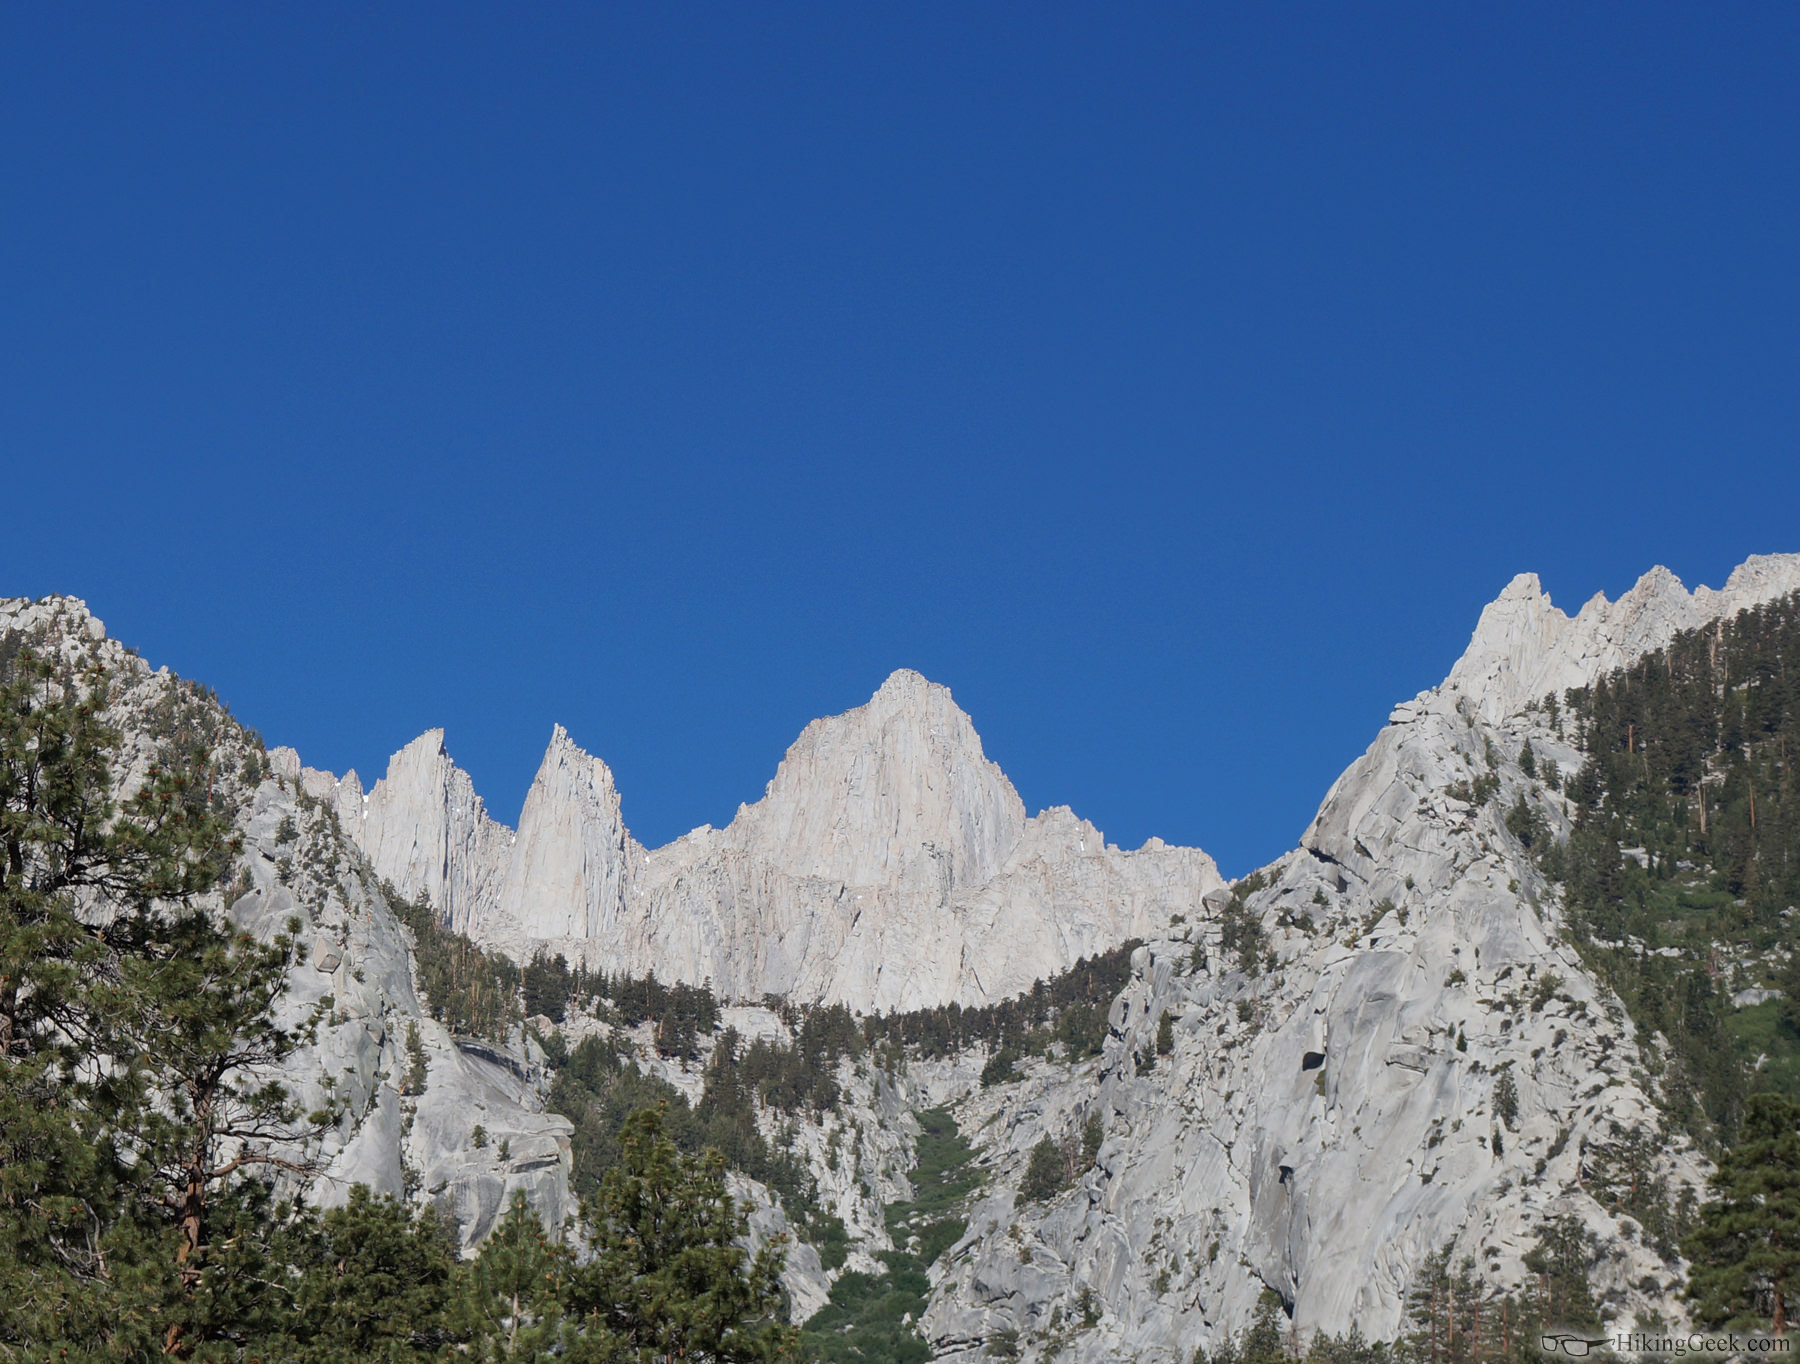 Trip & Hike Planning, June 1-4 2014 (Mt. Whitney, Yosemite & Mammoth)